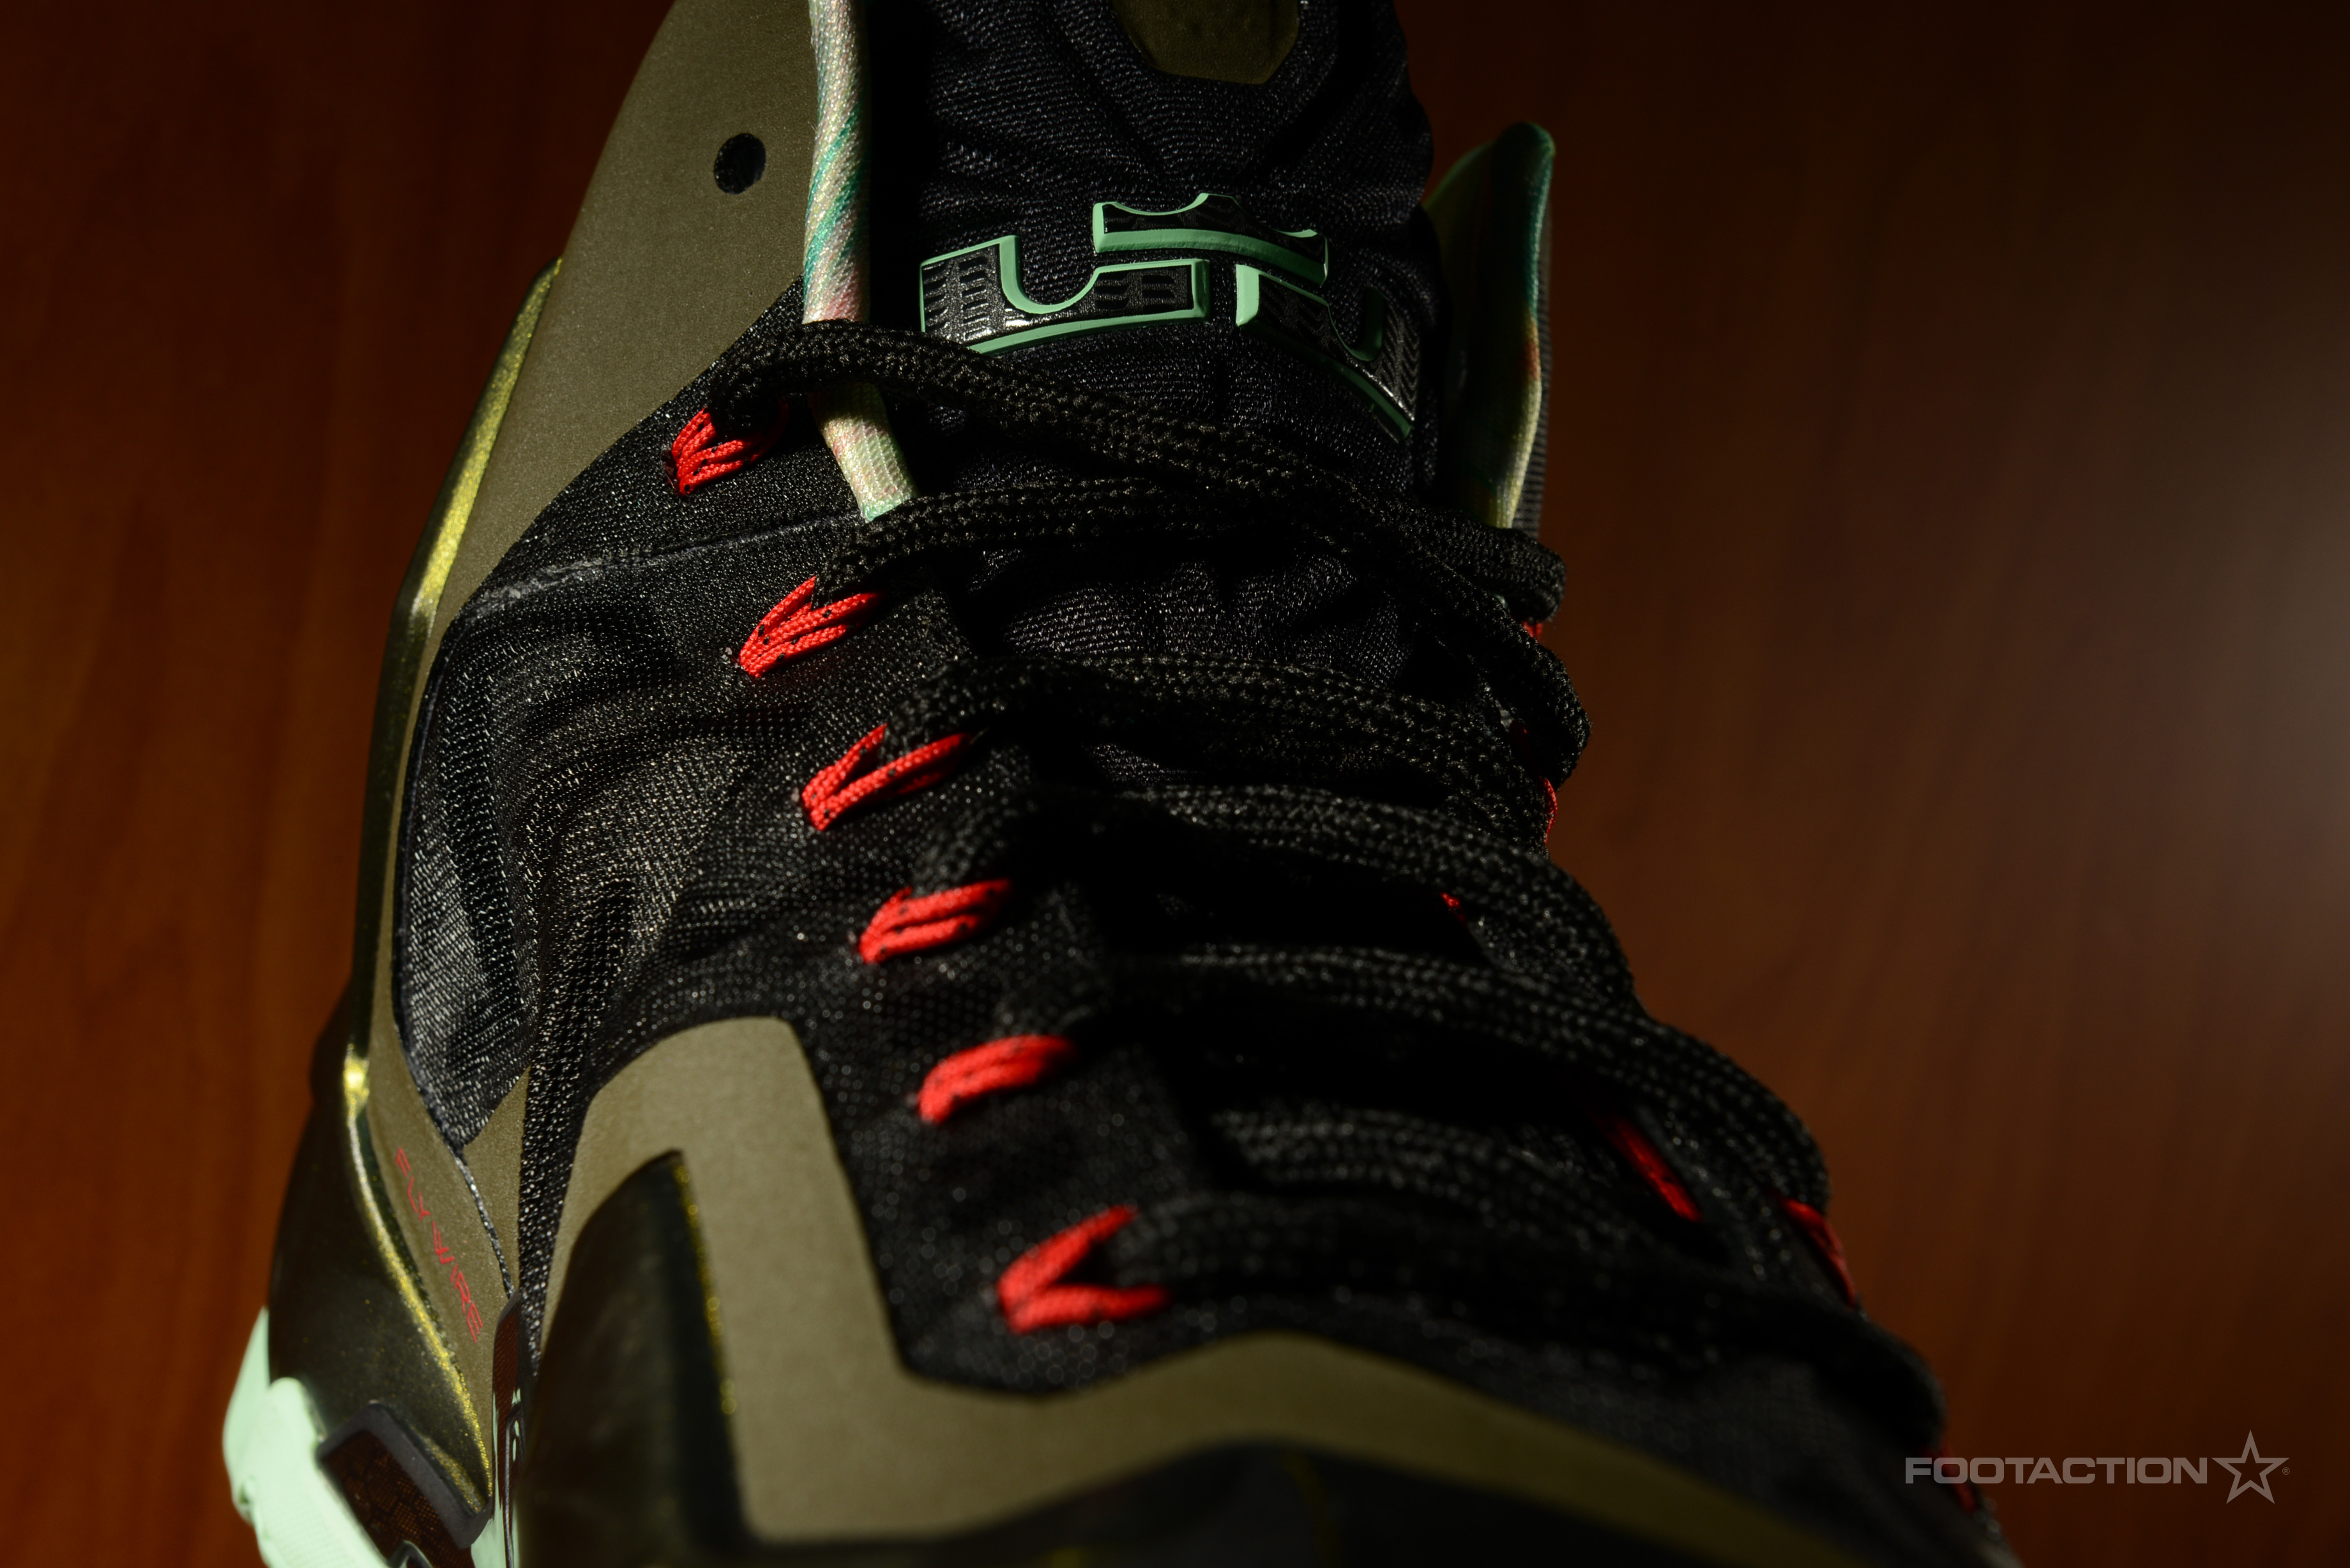 """best website b0a25 4201e The Nike Lebron XI """"King s Pride"""" is the first colorway that will kick off  the latest line from the Nike s very own poster boy, LeBron James."""